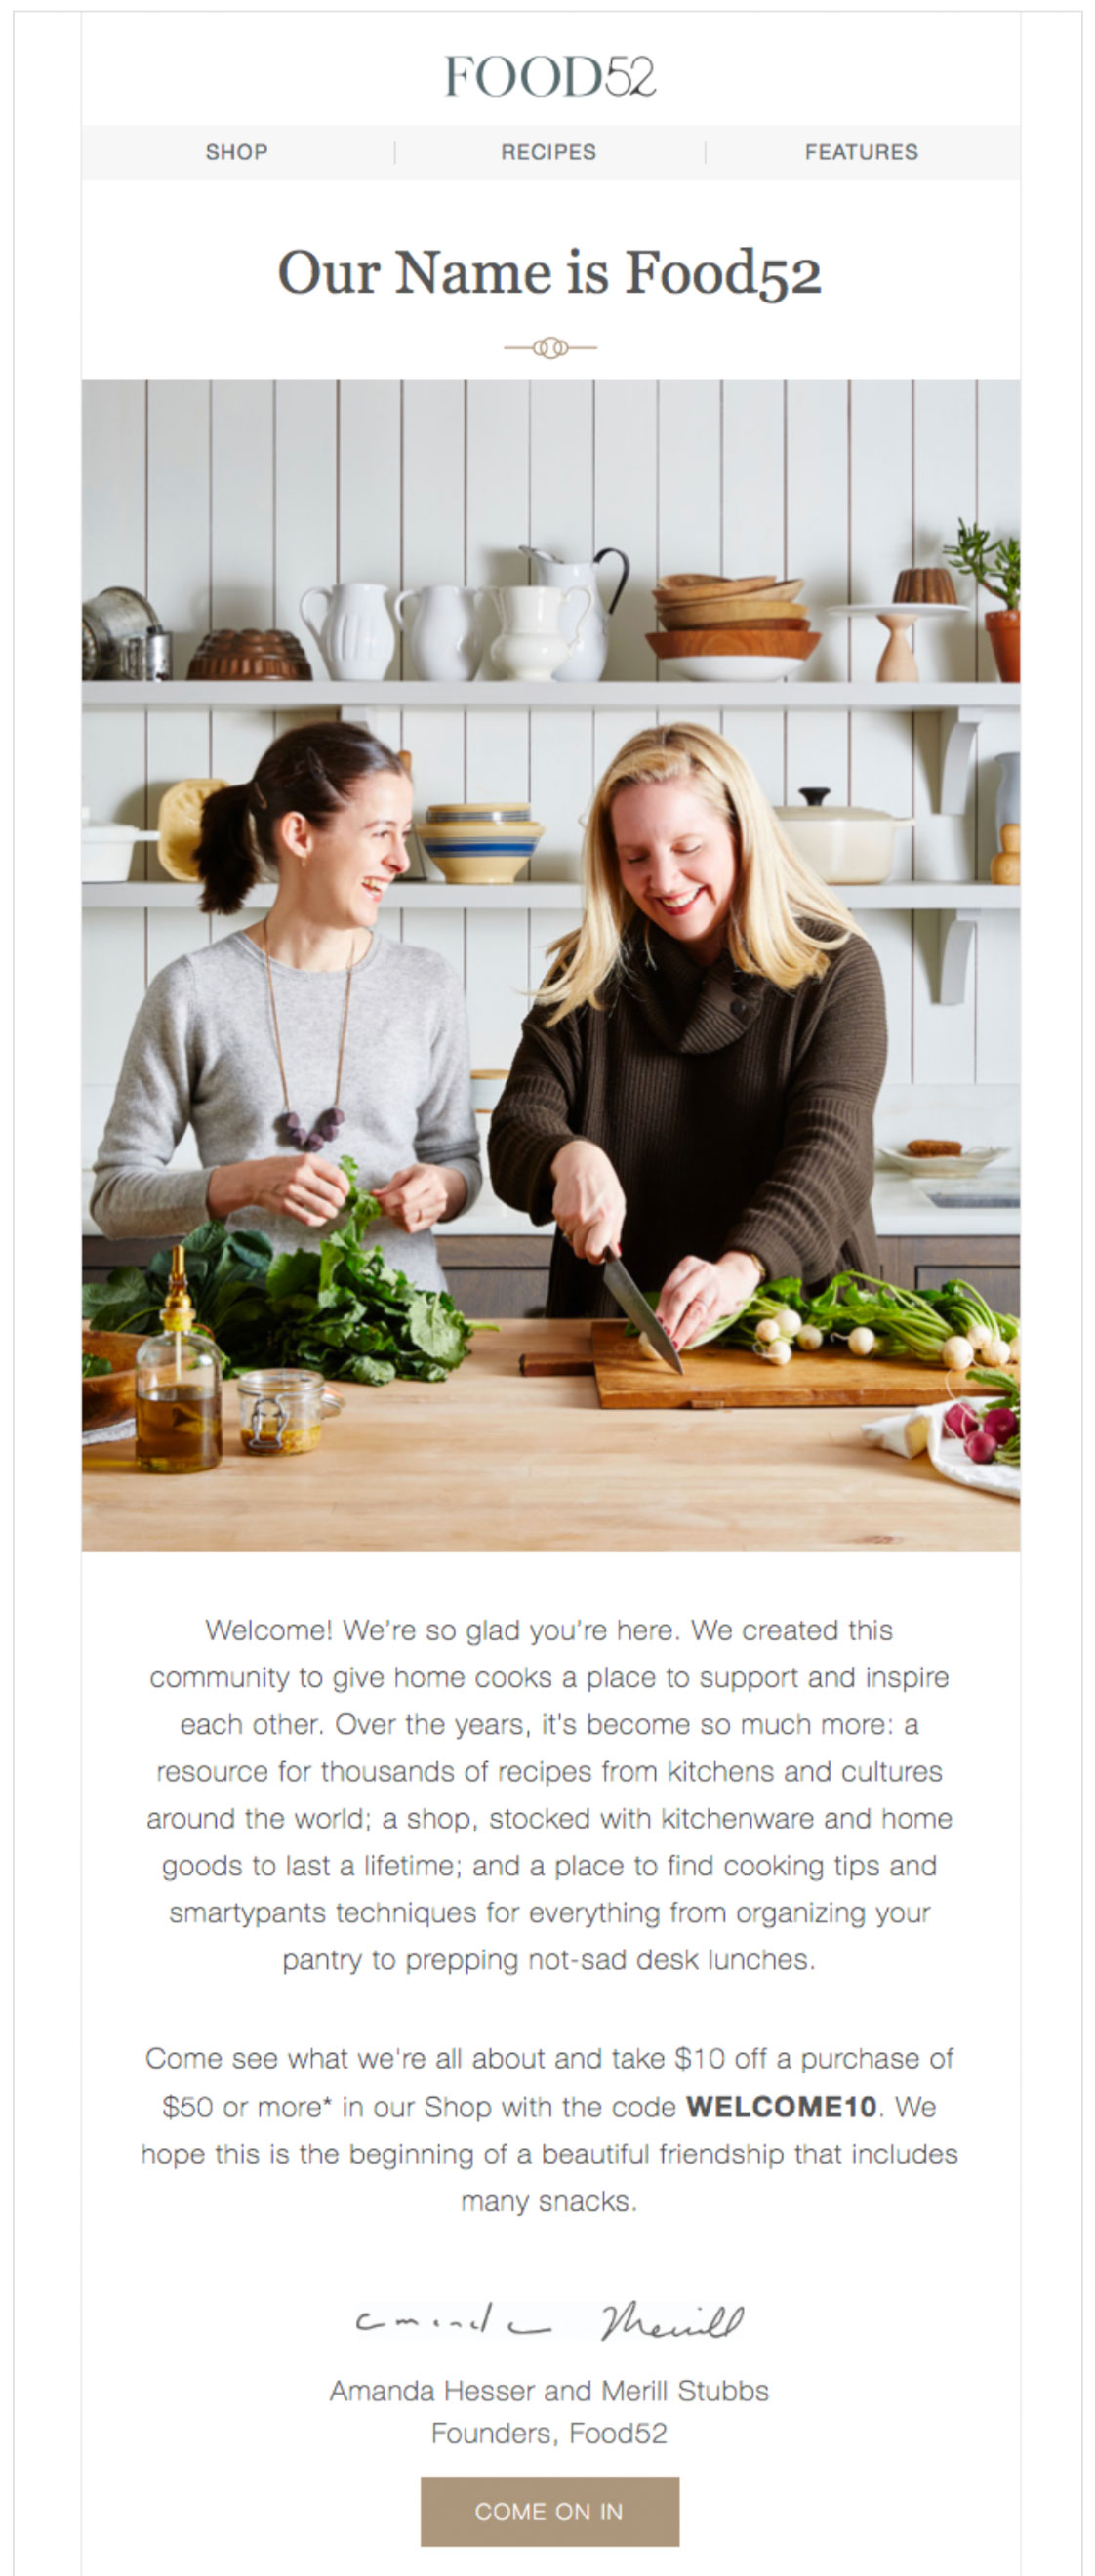 Food52 shows off the people behind the brand.